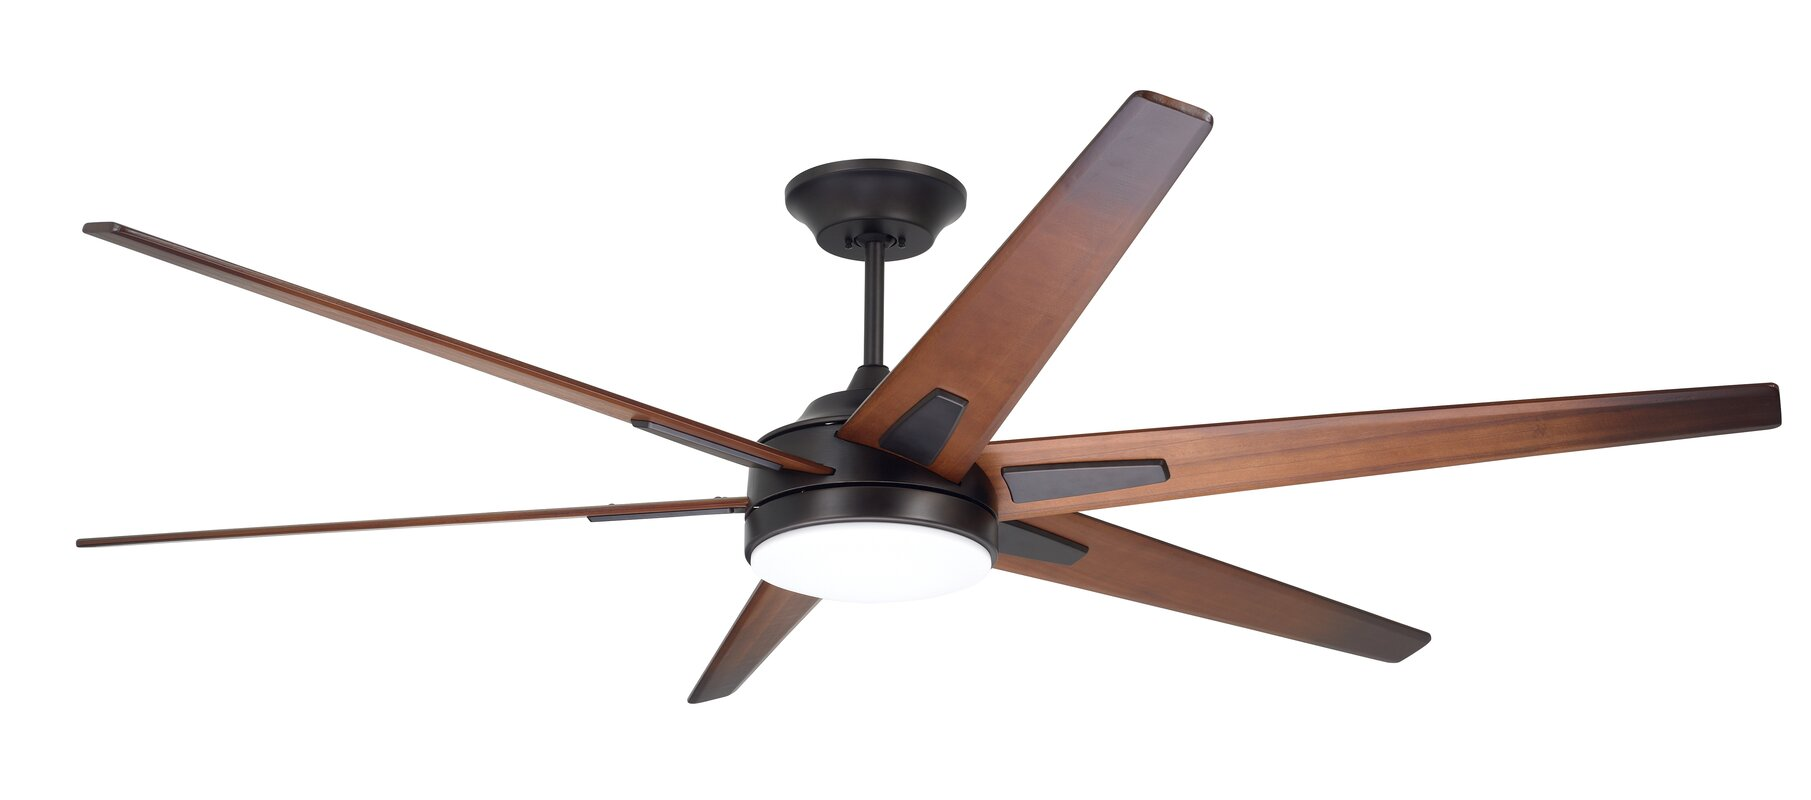 17 stories 72 durst 6 blade led ceiling fan reviews wayfair 72 durst 6 blade led ceiling fan mozeypictures Images